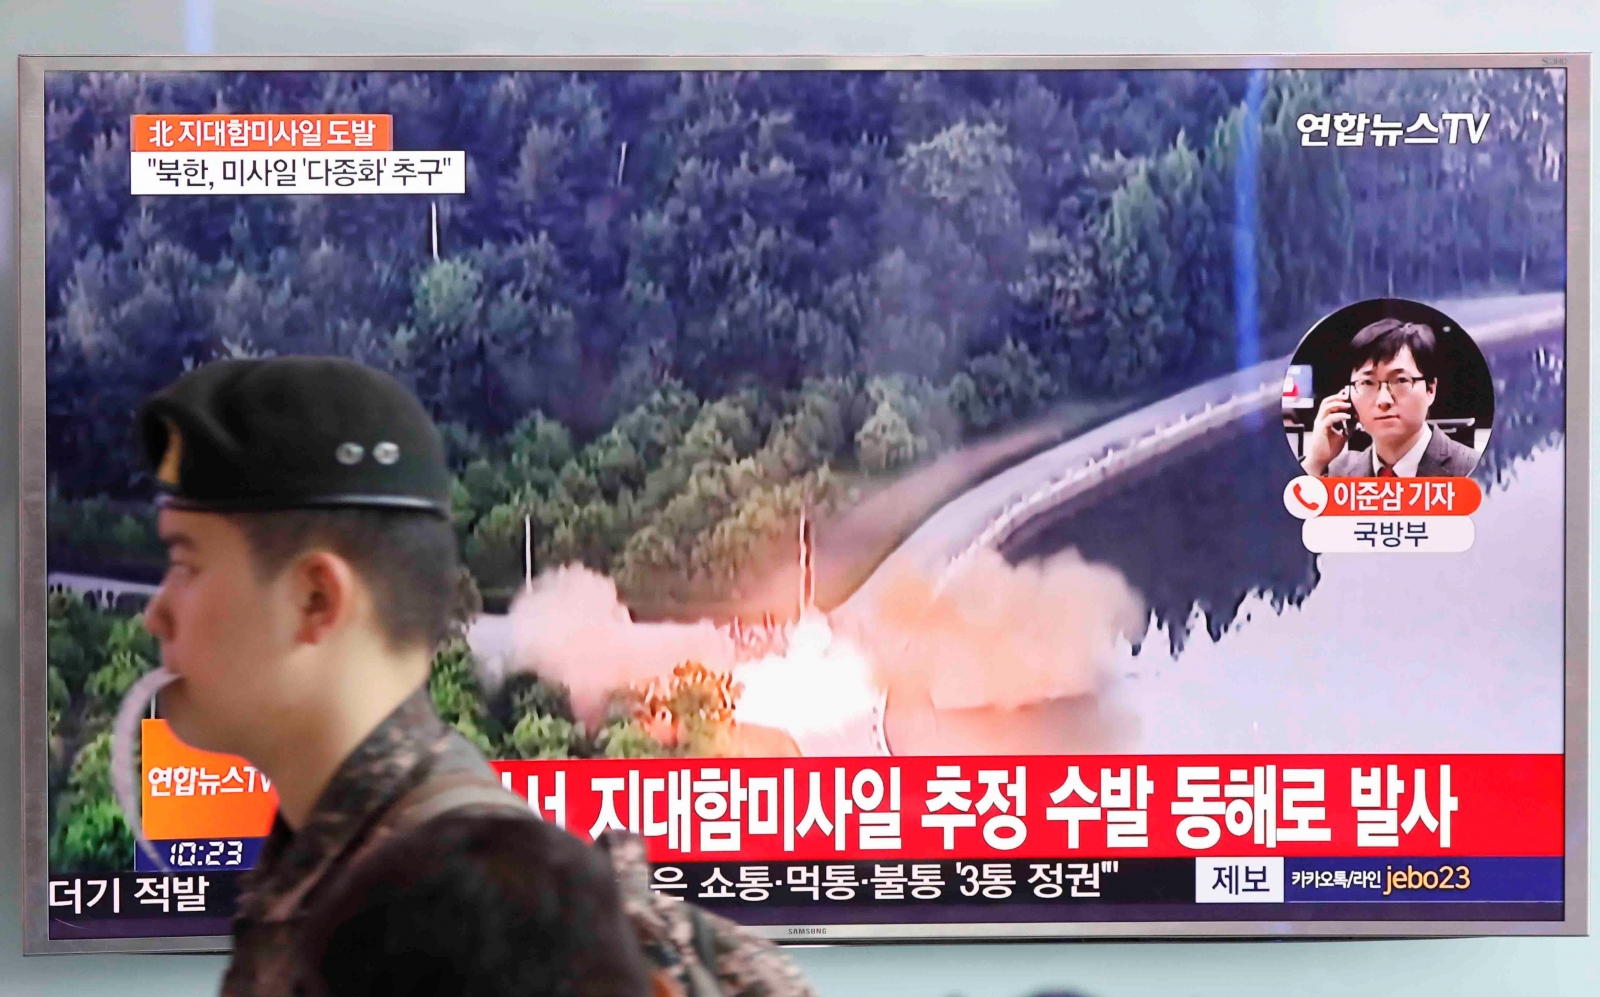 South Korean Military: North Korea Launches Unidentified Projectile